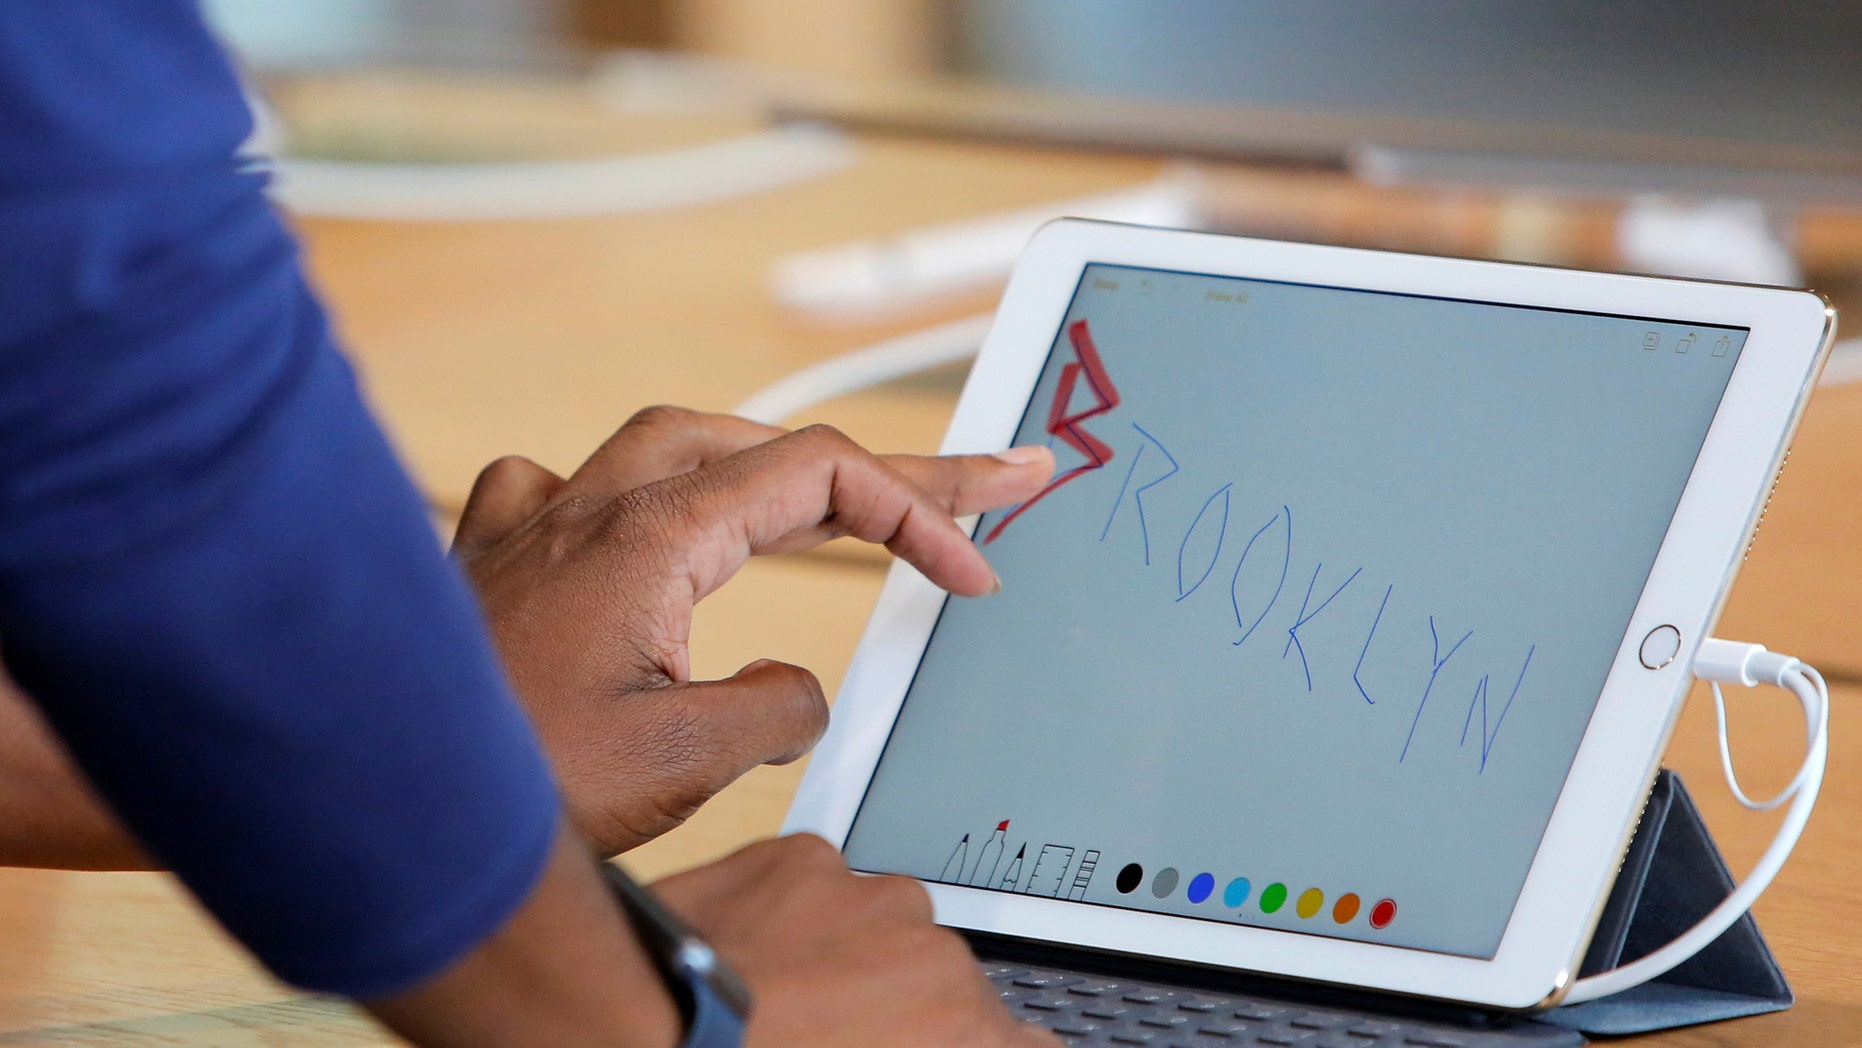 File photo: A store employee writes on an iPad during a preview event at the new Apple Store Williamsburg in Brooklyn, New York, U.S., July 28, 2016. (REUTERS/Andrew Kelly)